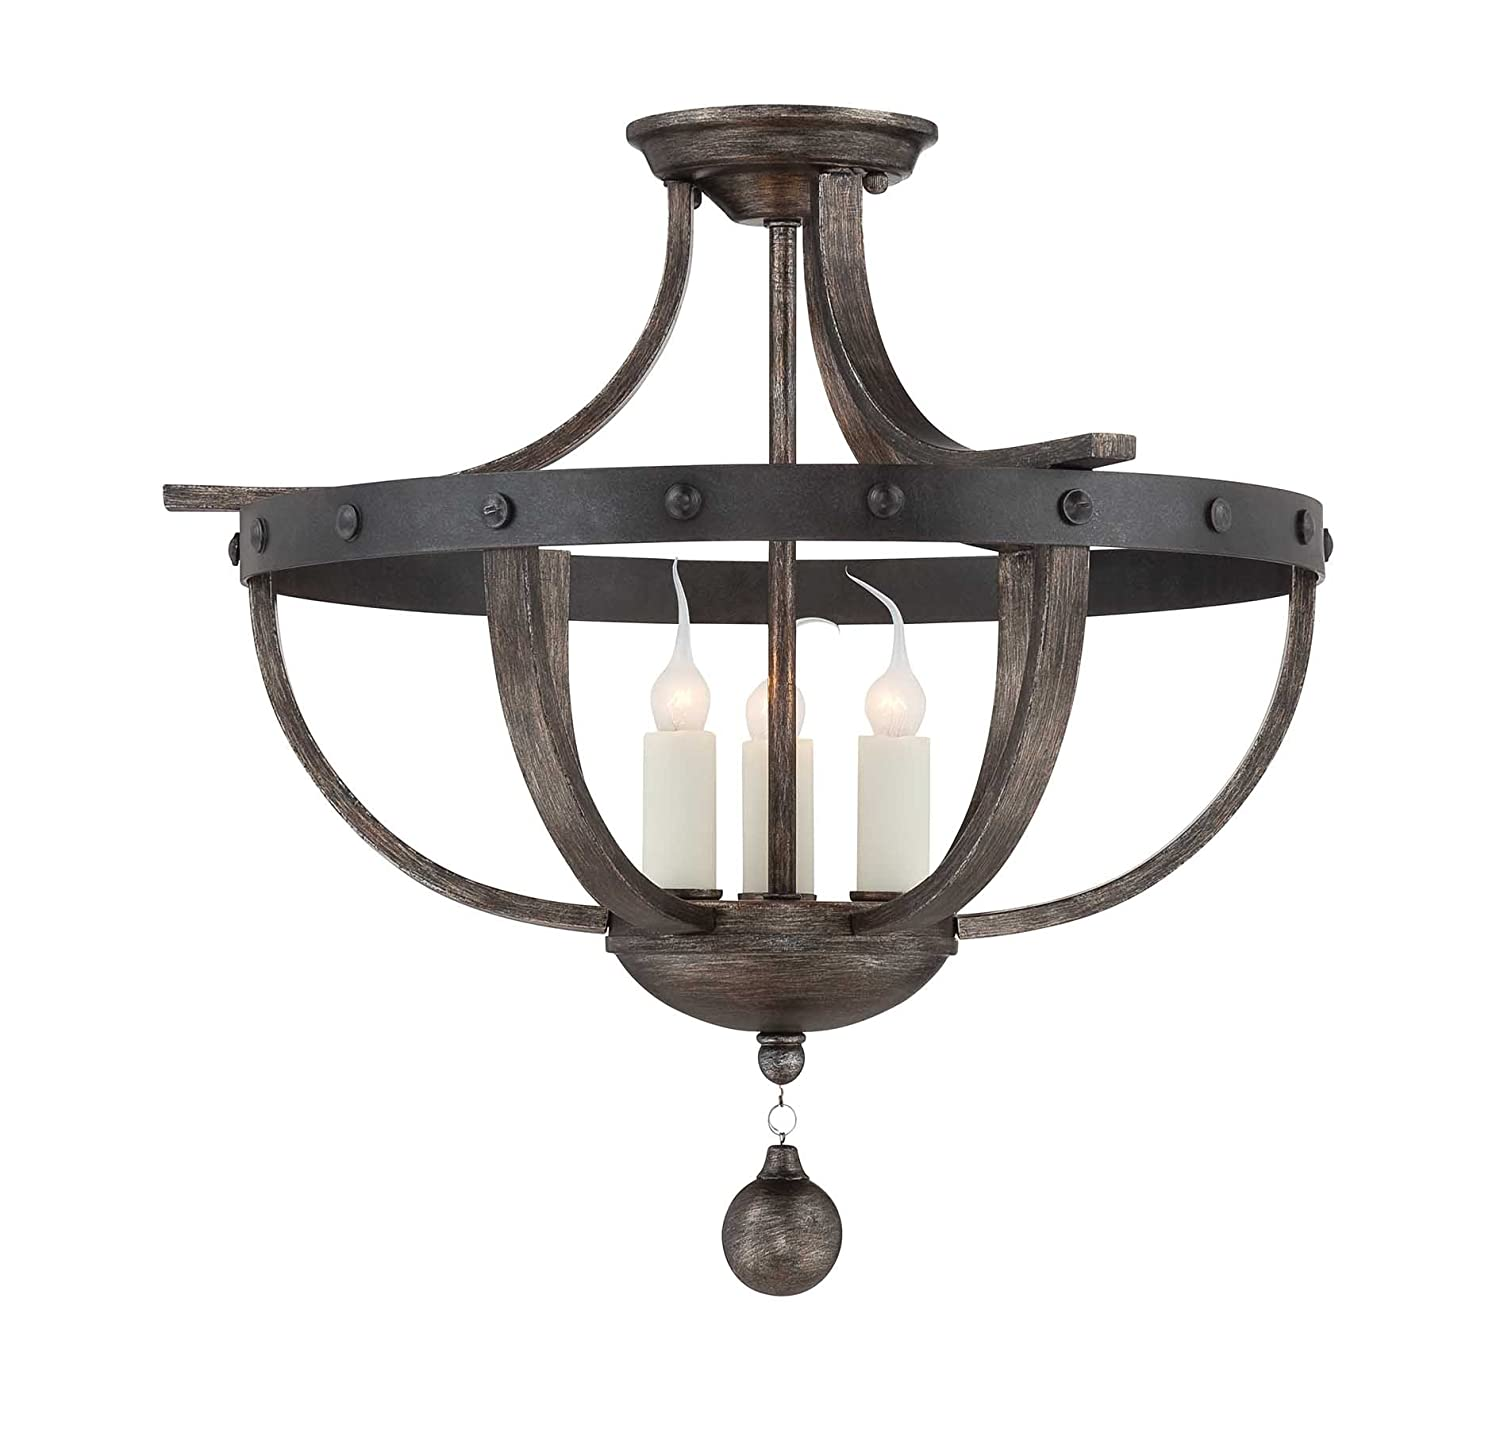 savoy house alsace 3light semiflush reclaimed wood chandeliers amazoncom - Savoy Lighting